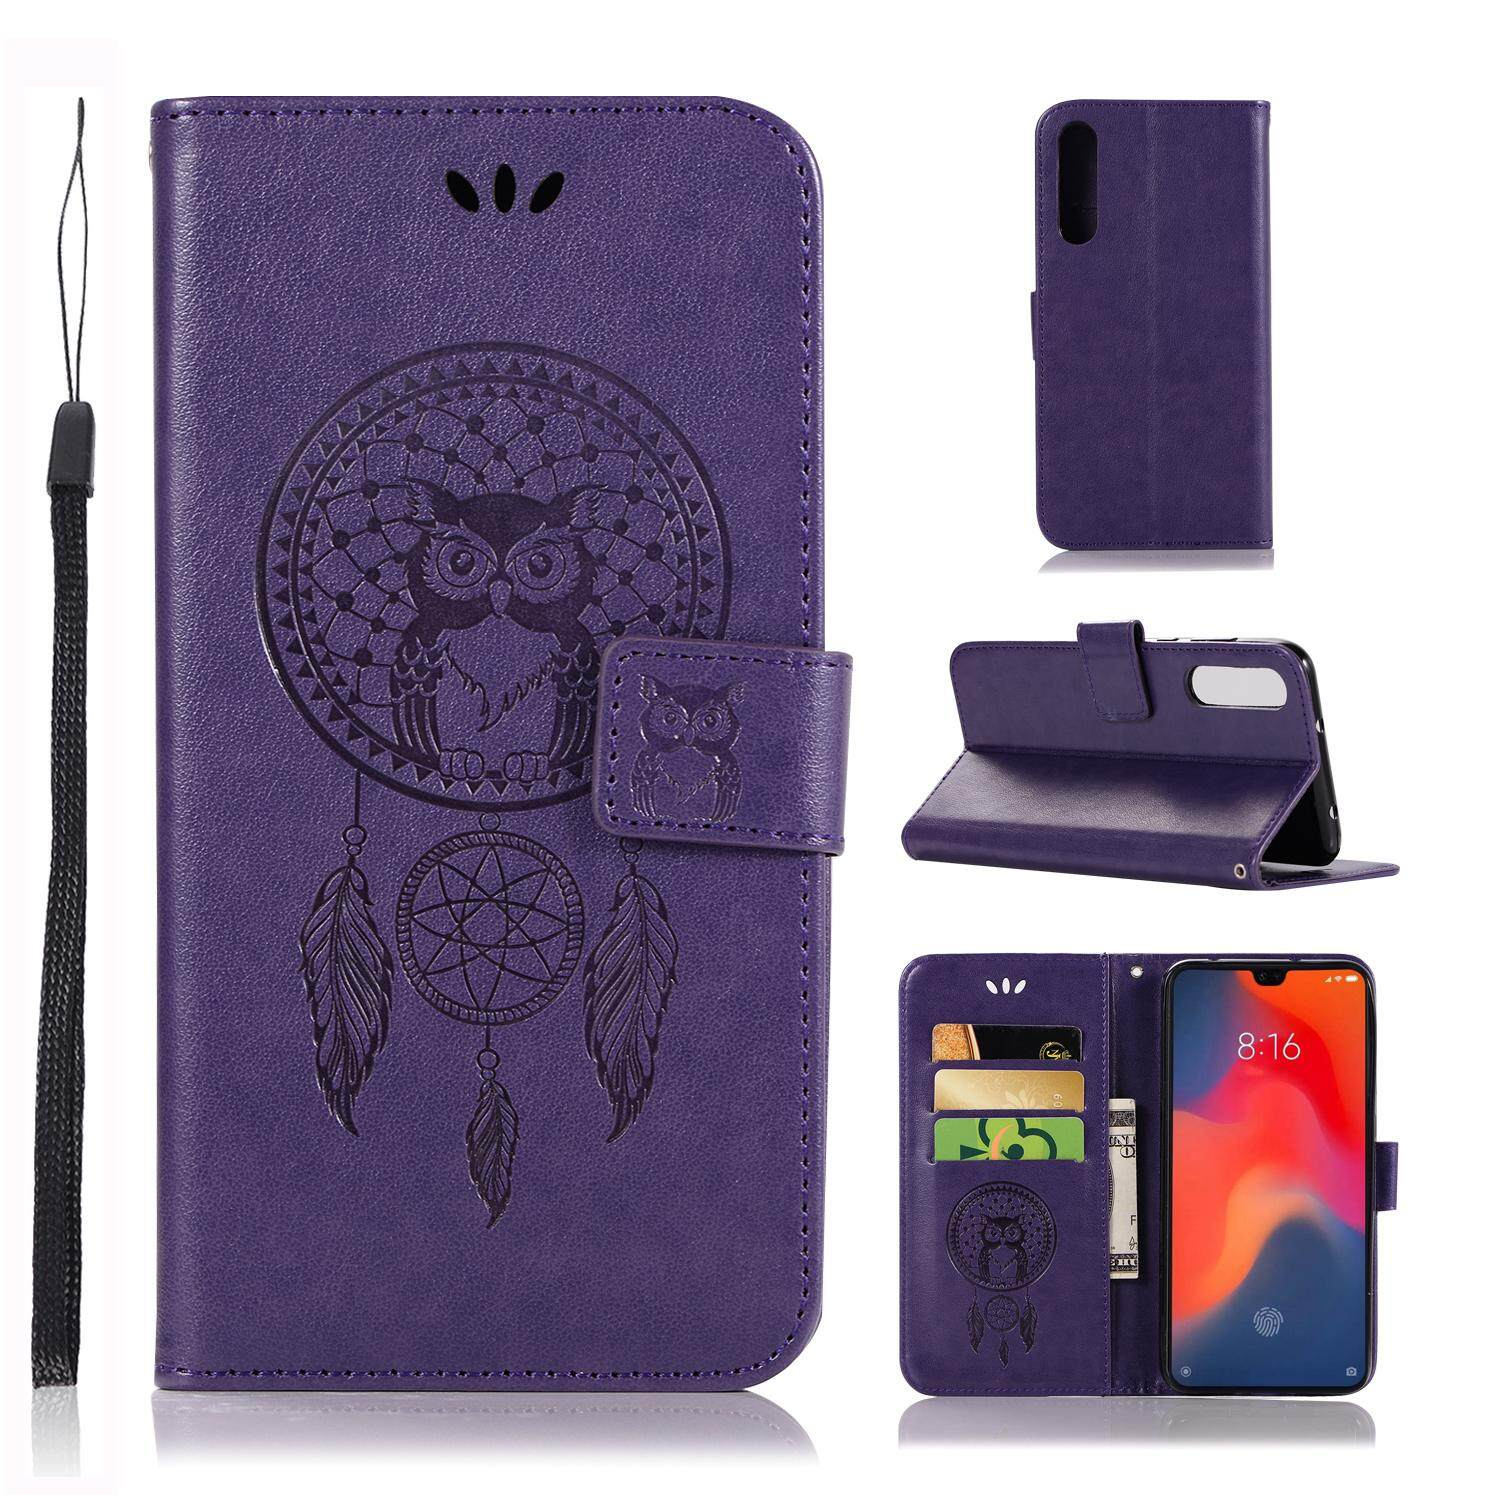 Luxury For Huawei P30 Casing , 3d Owl Embossing Leather Folio Flip Case Cover By Life Goes On.